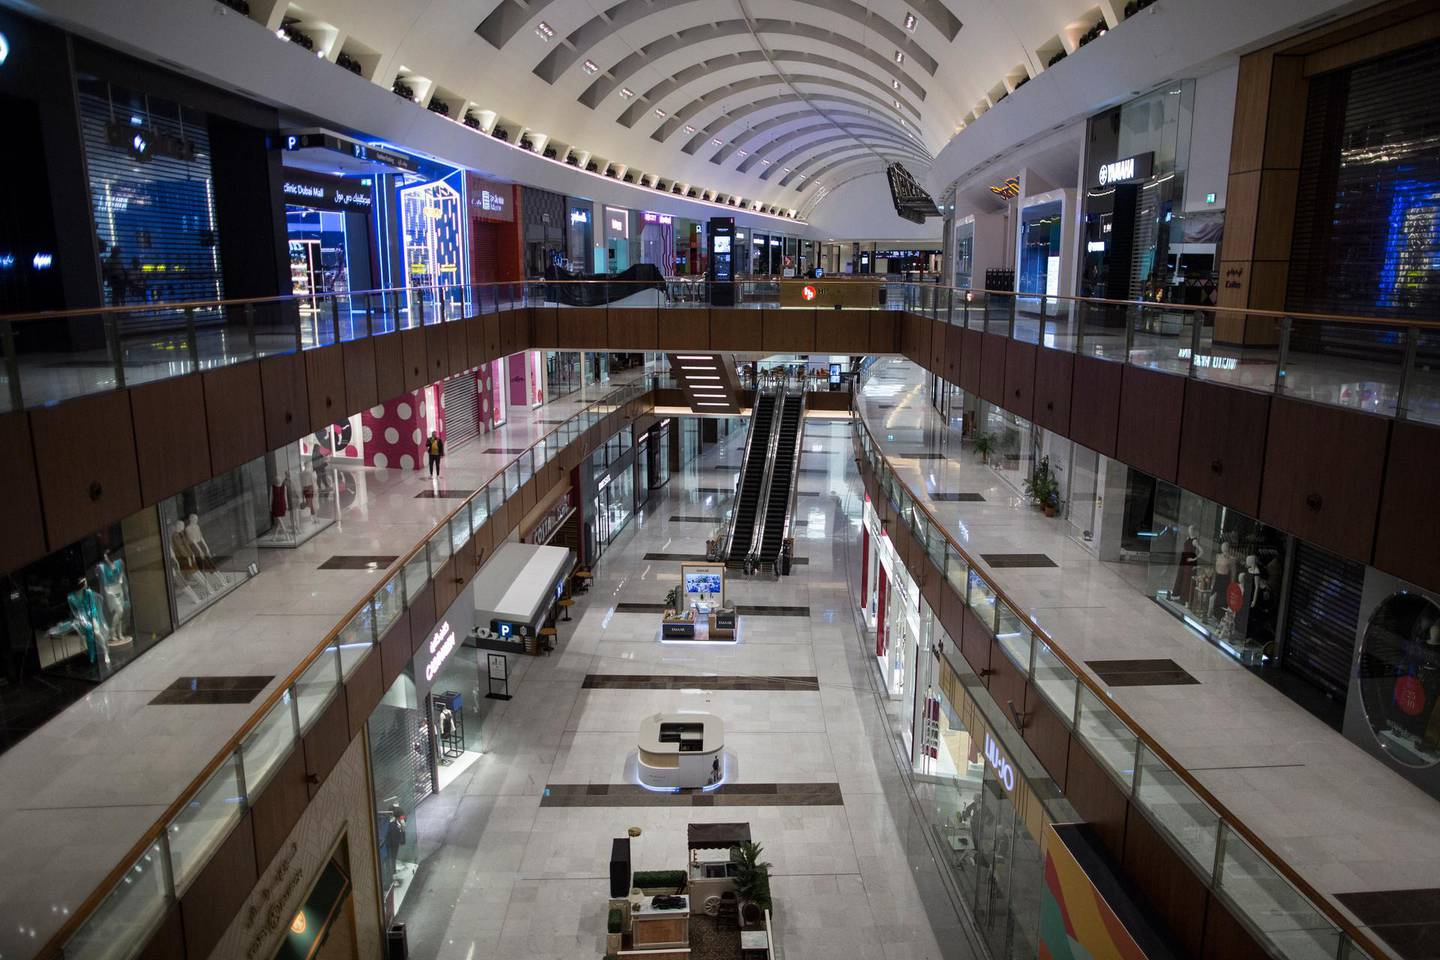 epa08319760 A view of the empty Dubai Mall after shutdown, in Dubai, United Arab Emirates, 24 March 2020. The UAE Ministry of Health and Community Protection and the National Emergency and Crisis Authority decided to close all commercial centers, shopping centers and open markets that include the sale of fish, vegetables and meat, and exclude in the fish, vegetable and meat markets dealing with supply and wholesale companies. The protective measures were taken due to the coronavirus that causes the COVID-19 disease.  EPA/MAHMOUD KHALED